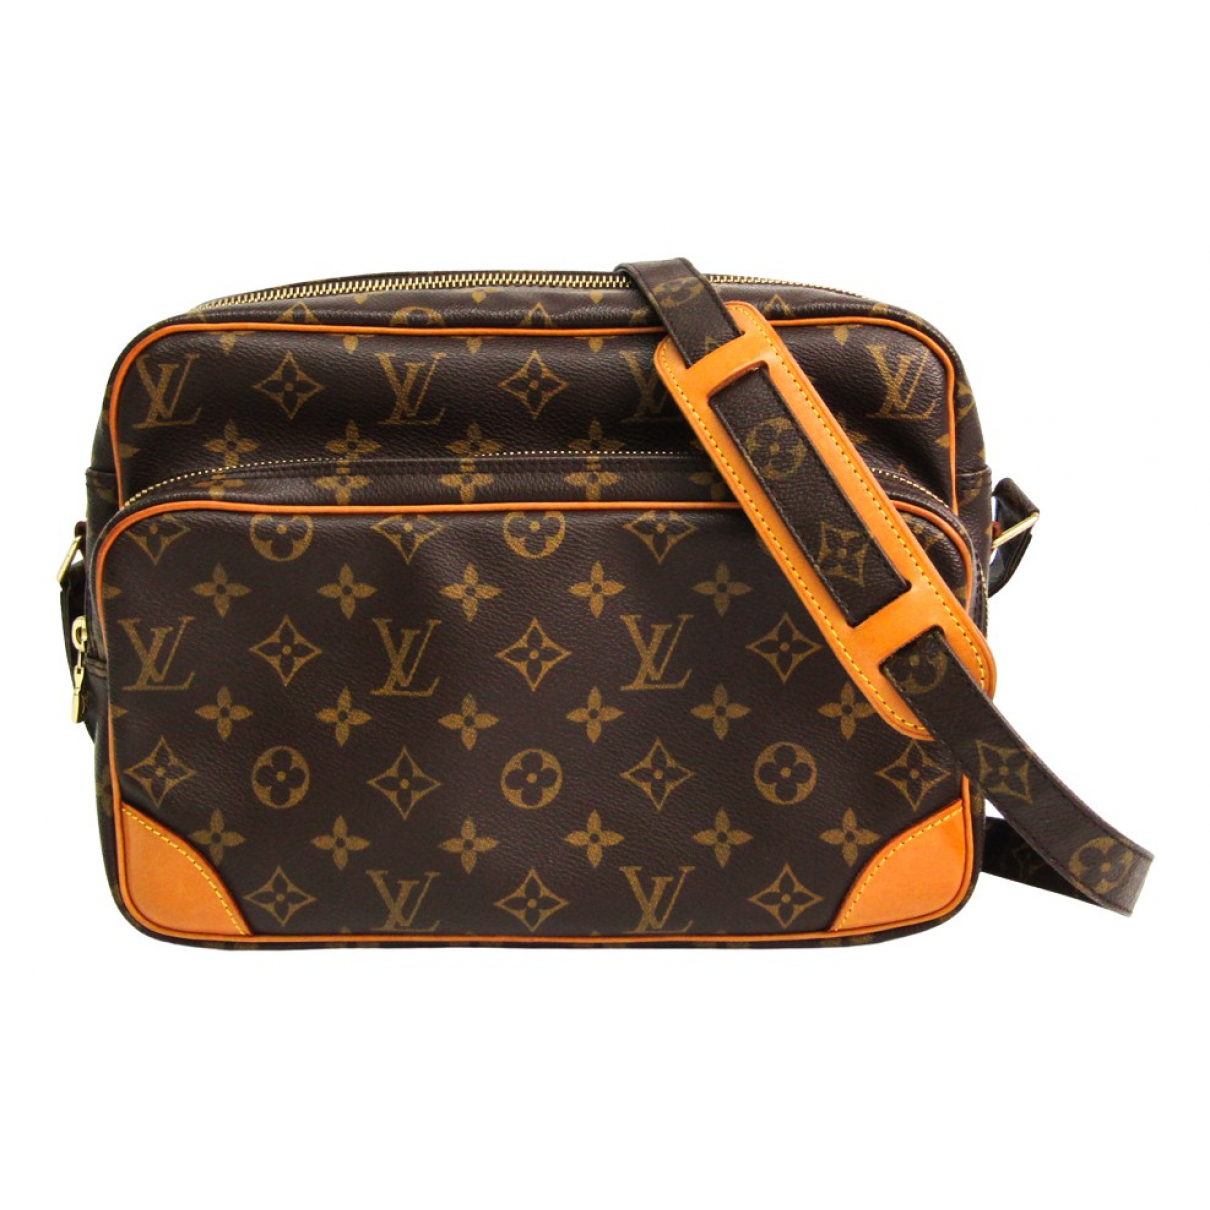 Louis Vuitton Nile Handtasche in  Braun Leinen